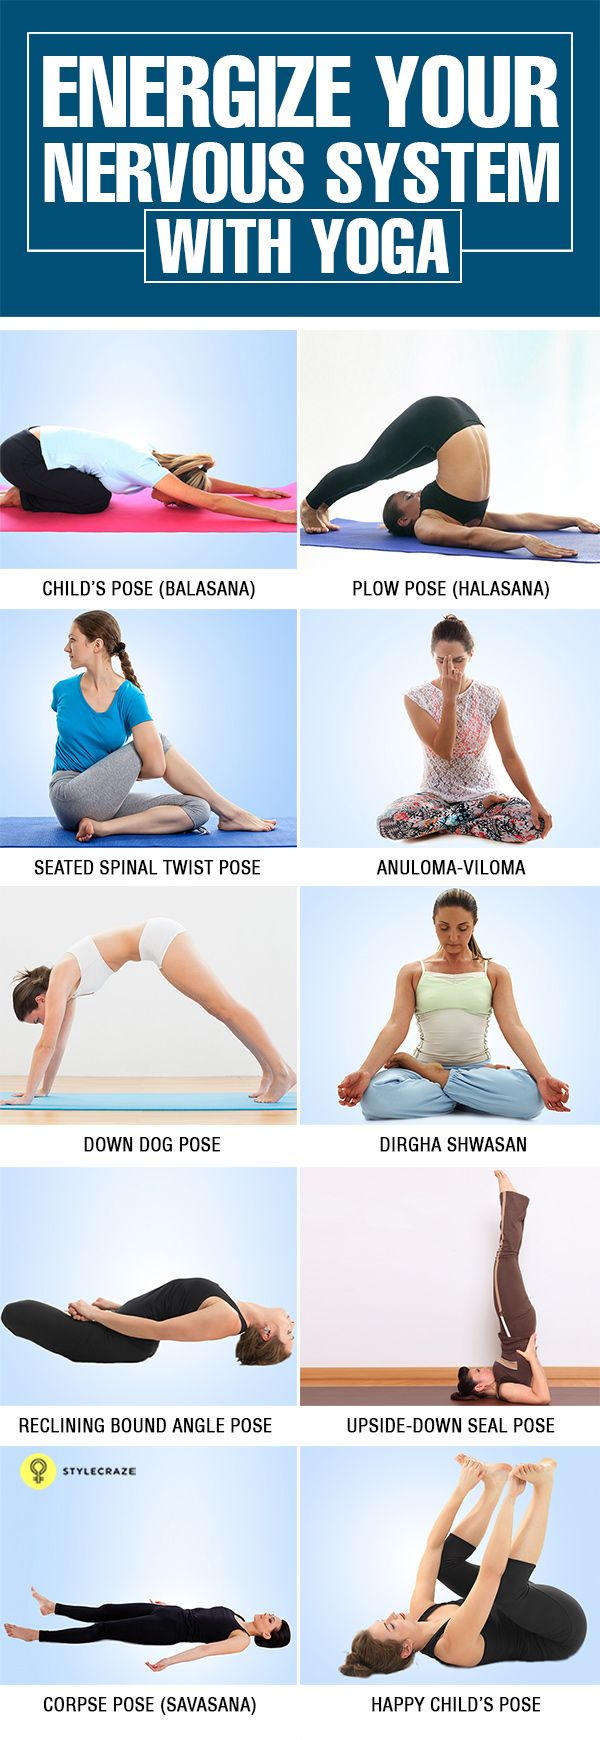 Yoga can help treat cough, stretch your body, cure menstrual cramps, reenergize ...